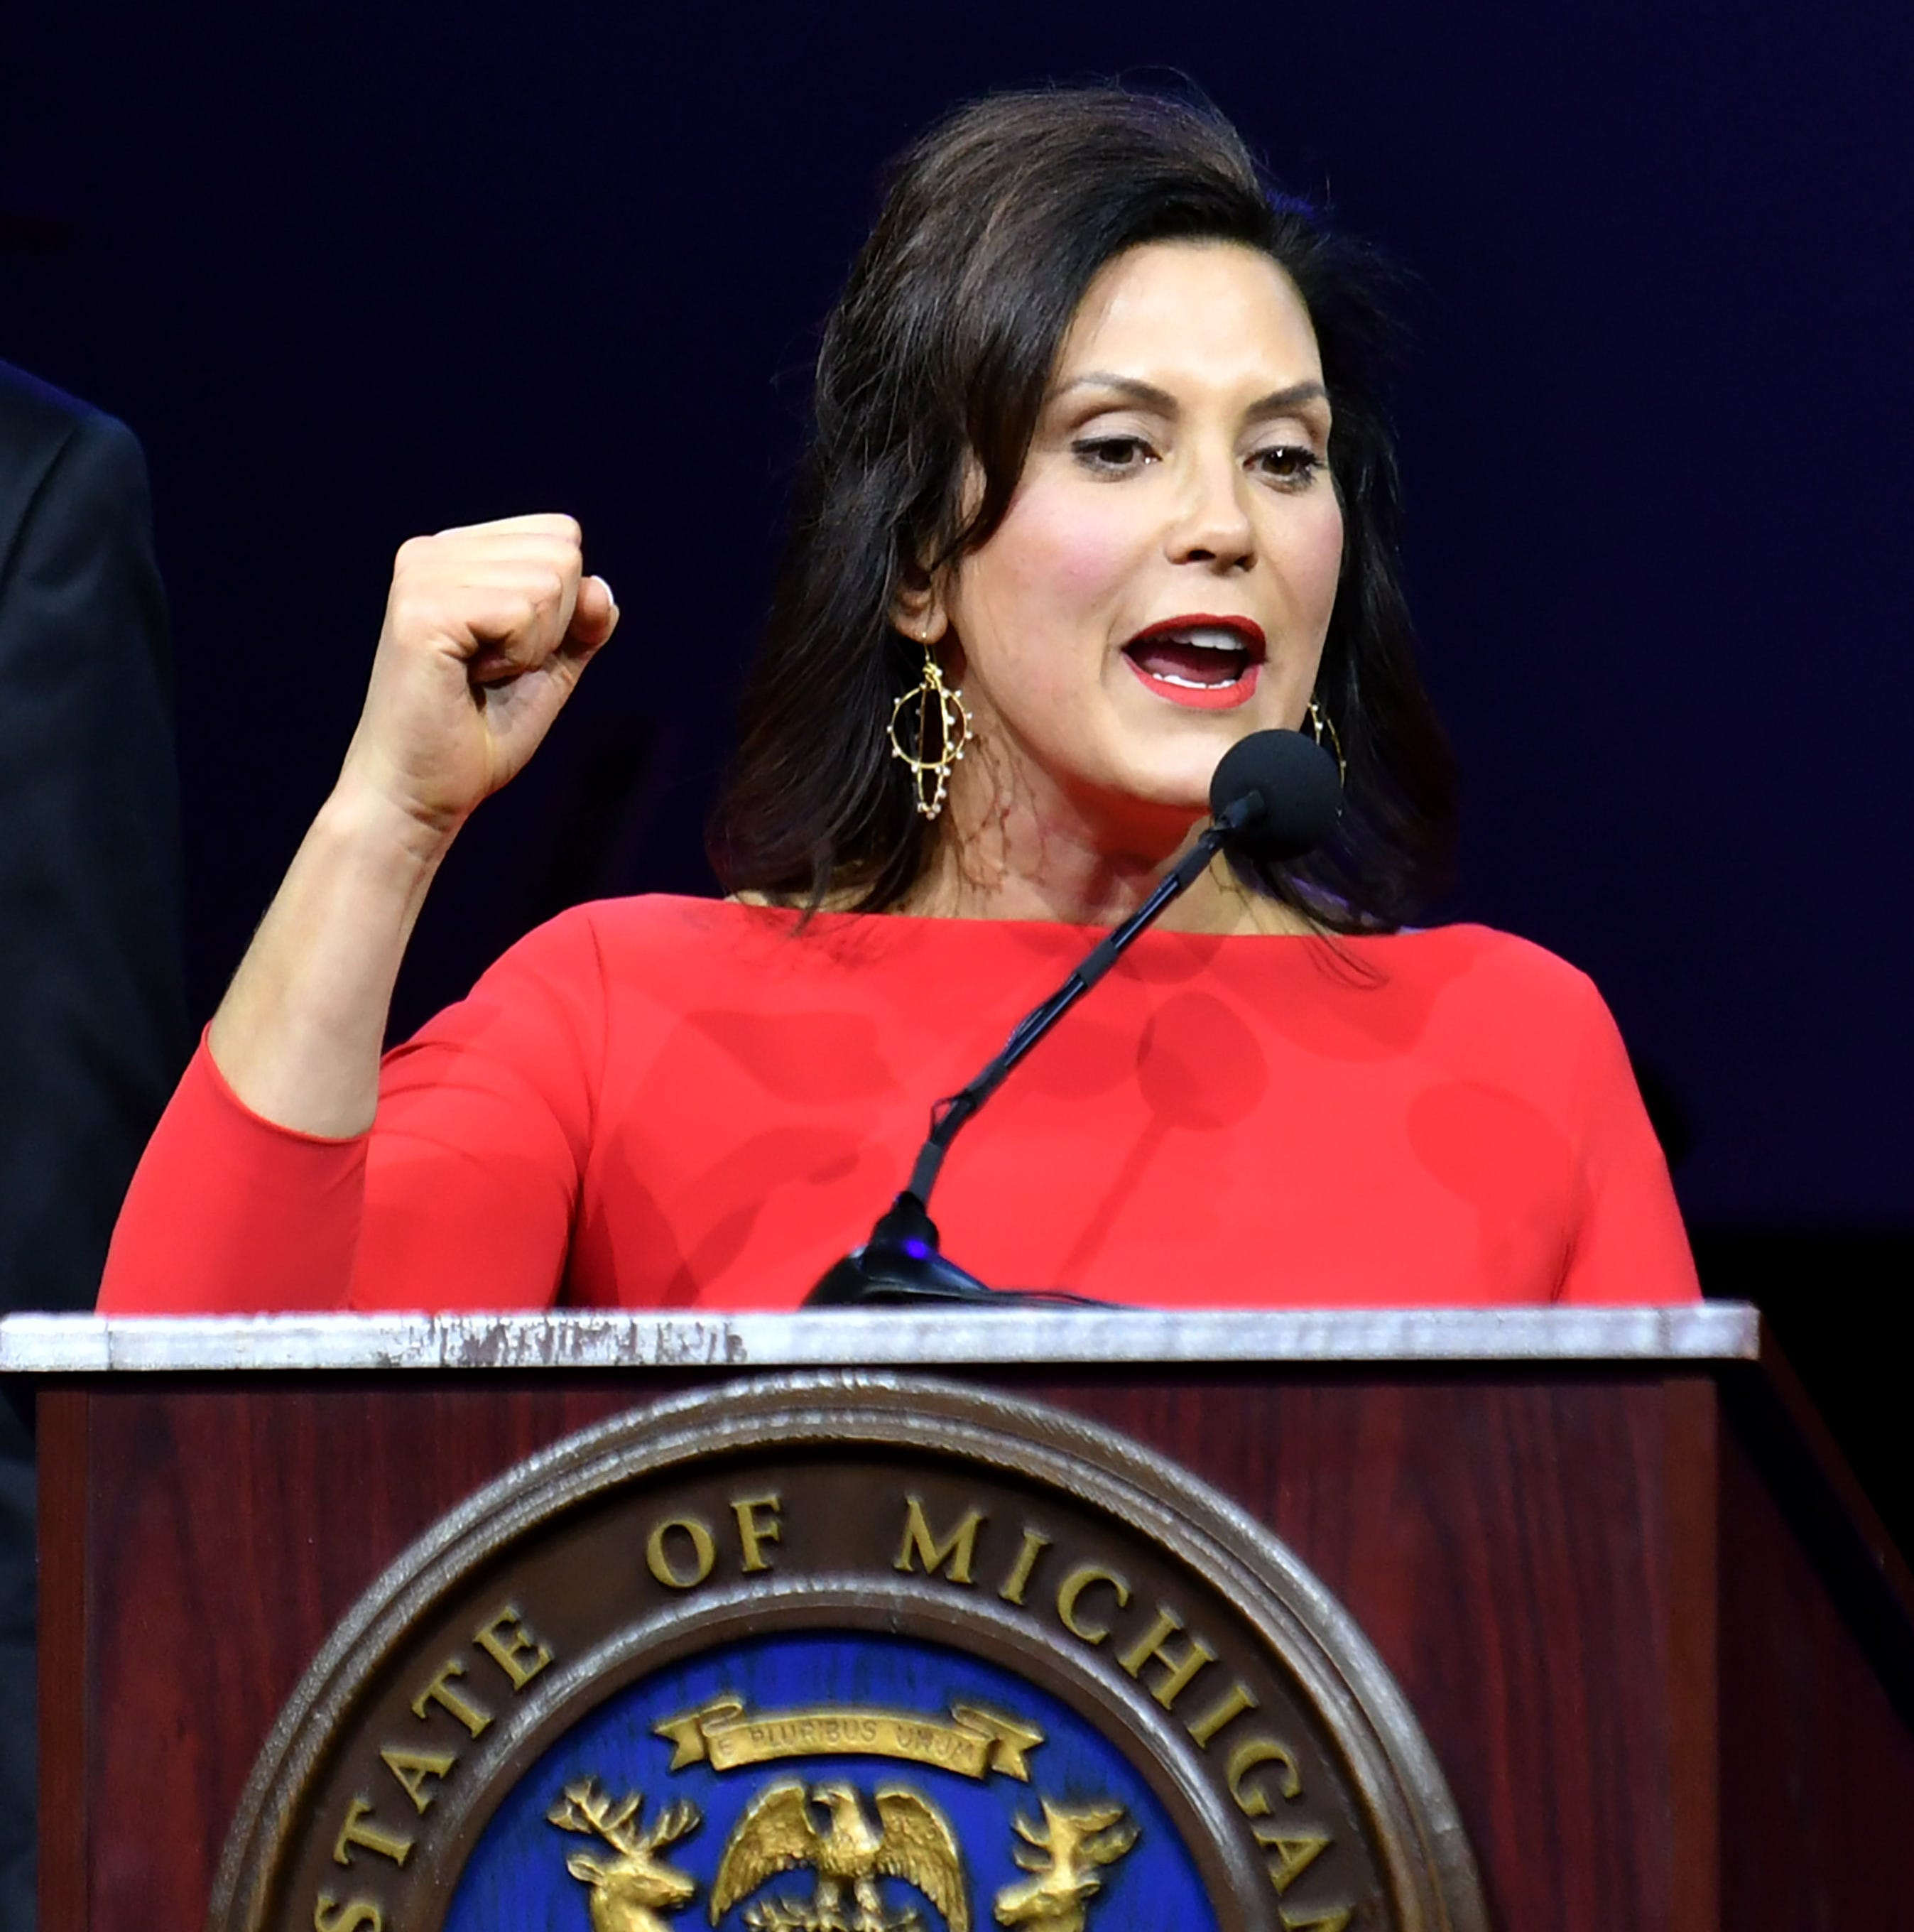 Whitmer set to speak at MSU women's march amid controversy